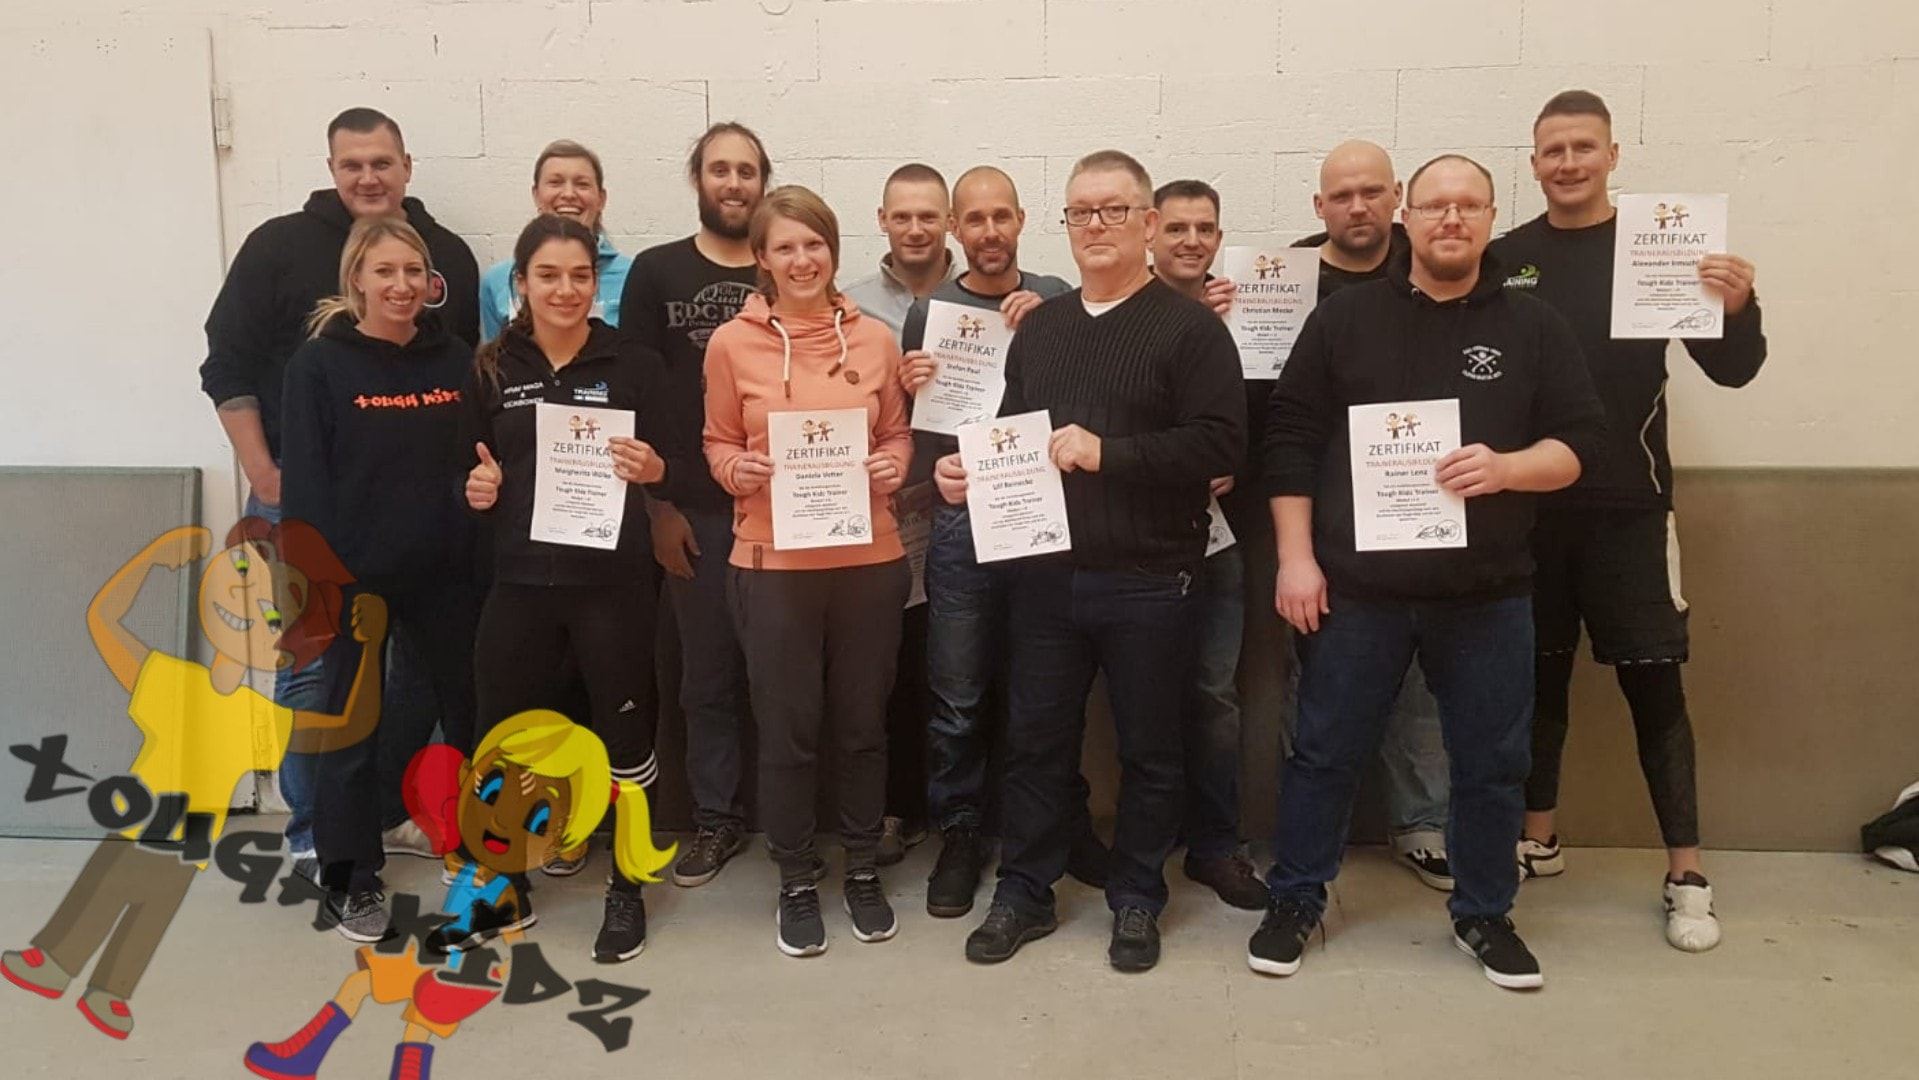 Tough Kidz - Trainerausbildung 2019 in Dresden